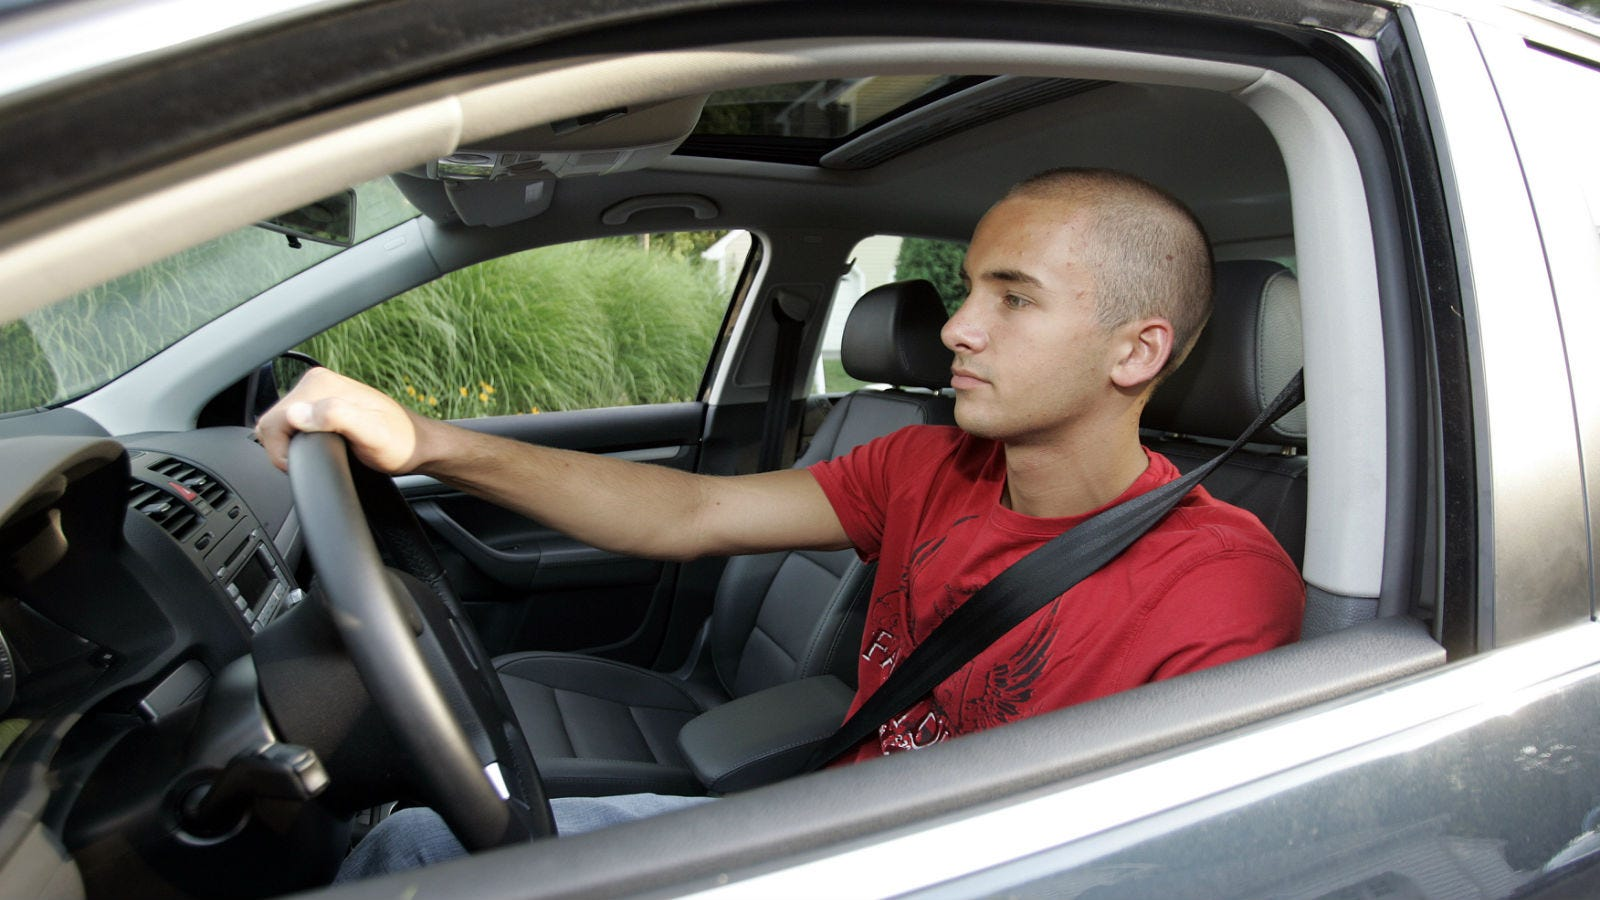 """That """"Best Used Cars For Teens"""" List Gets It Half Right"""